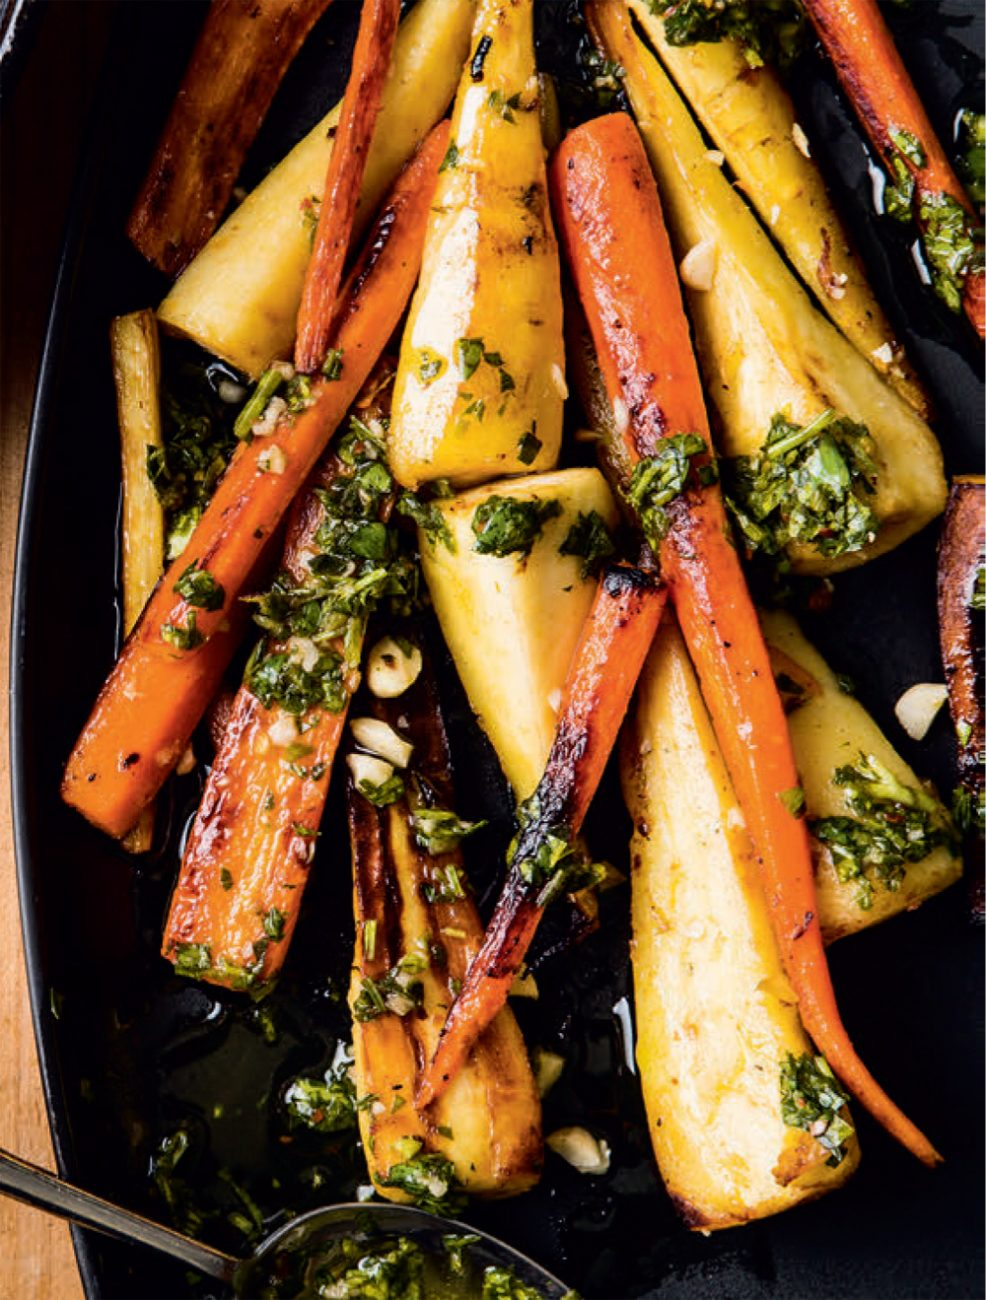 Carrots & parsnips with chimichurri recipe